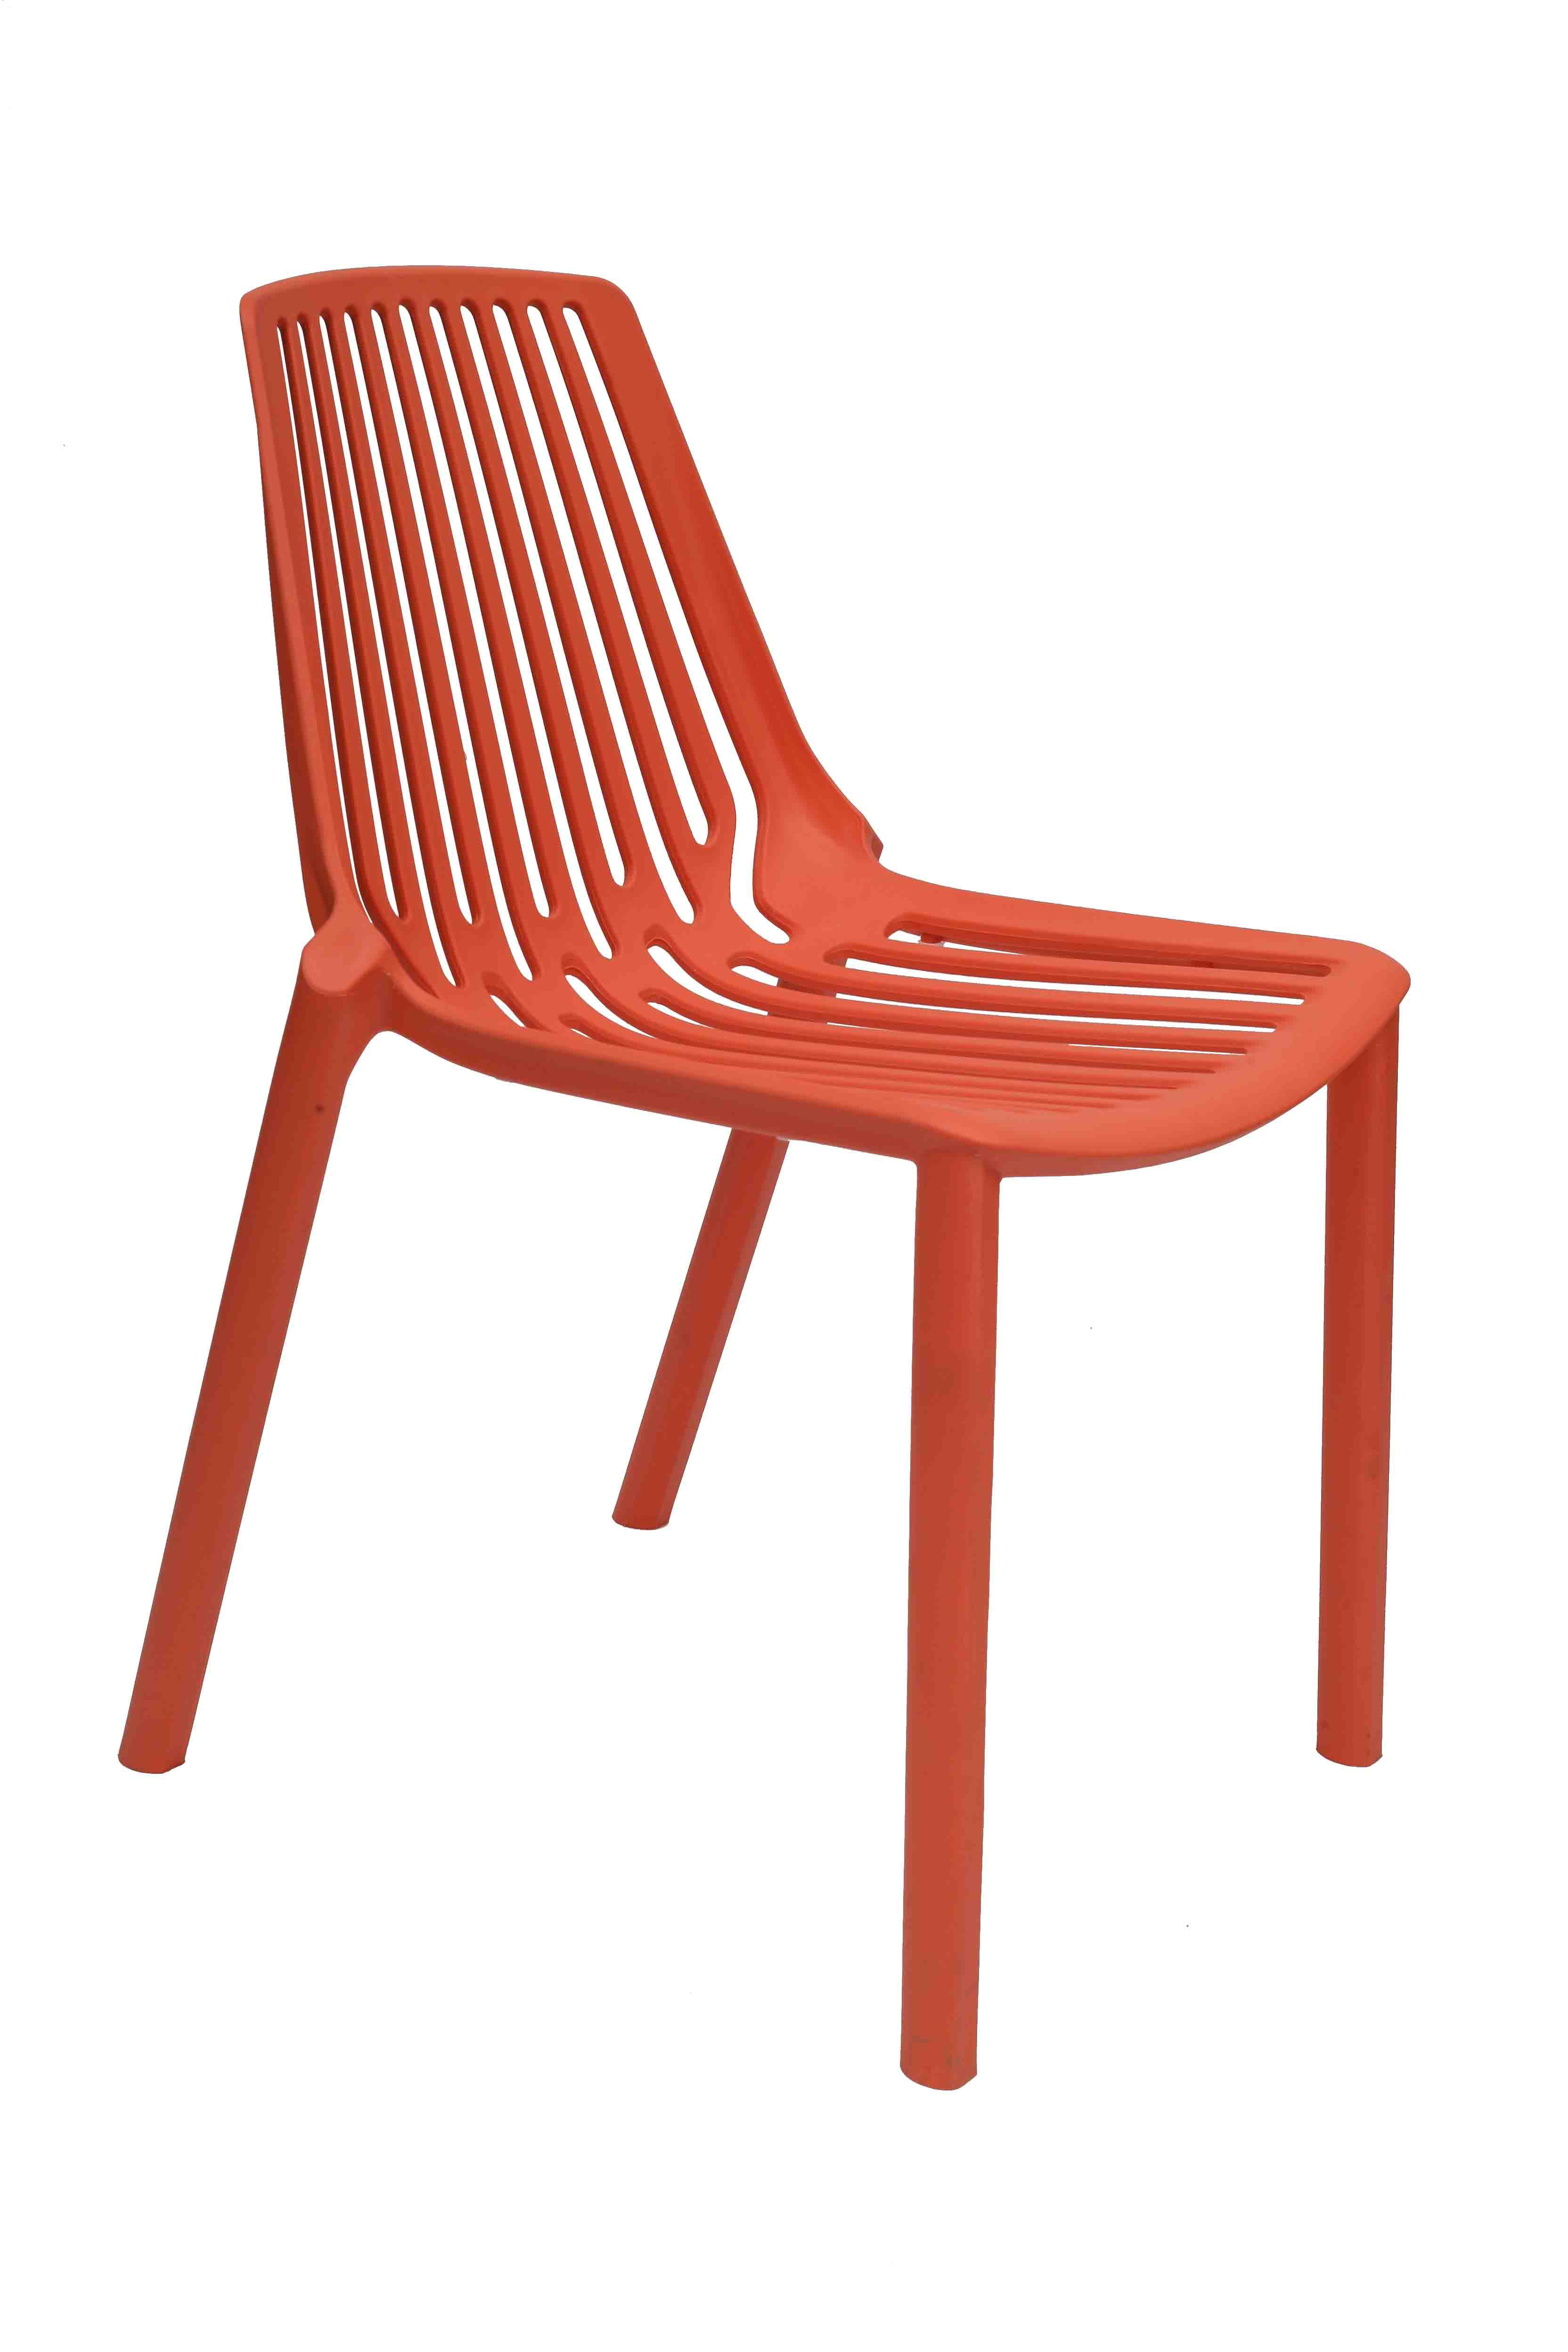 KNIGHT Plastic Chair Buy KNIGHT Plastic Chair line at Best